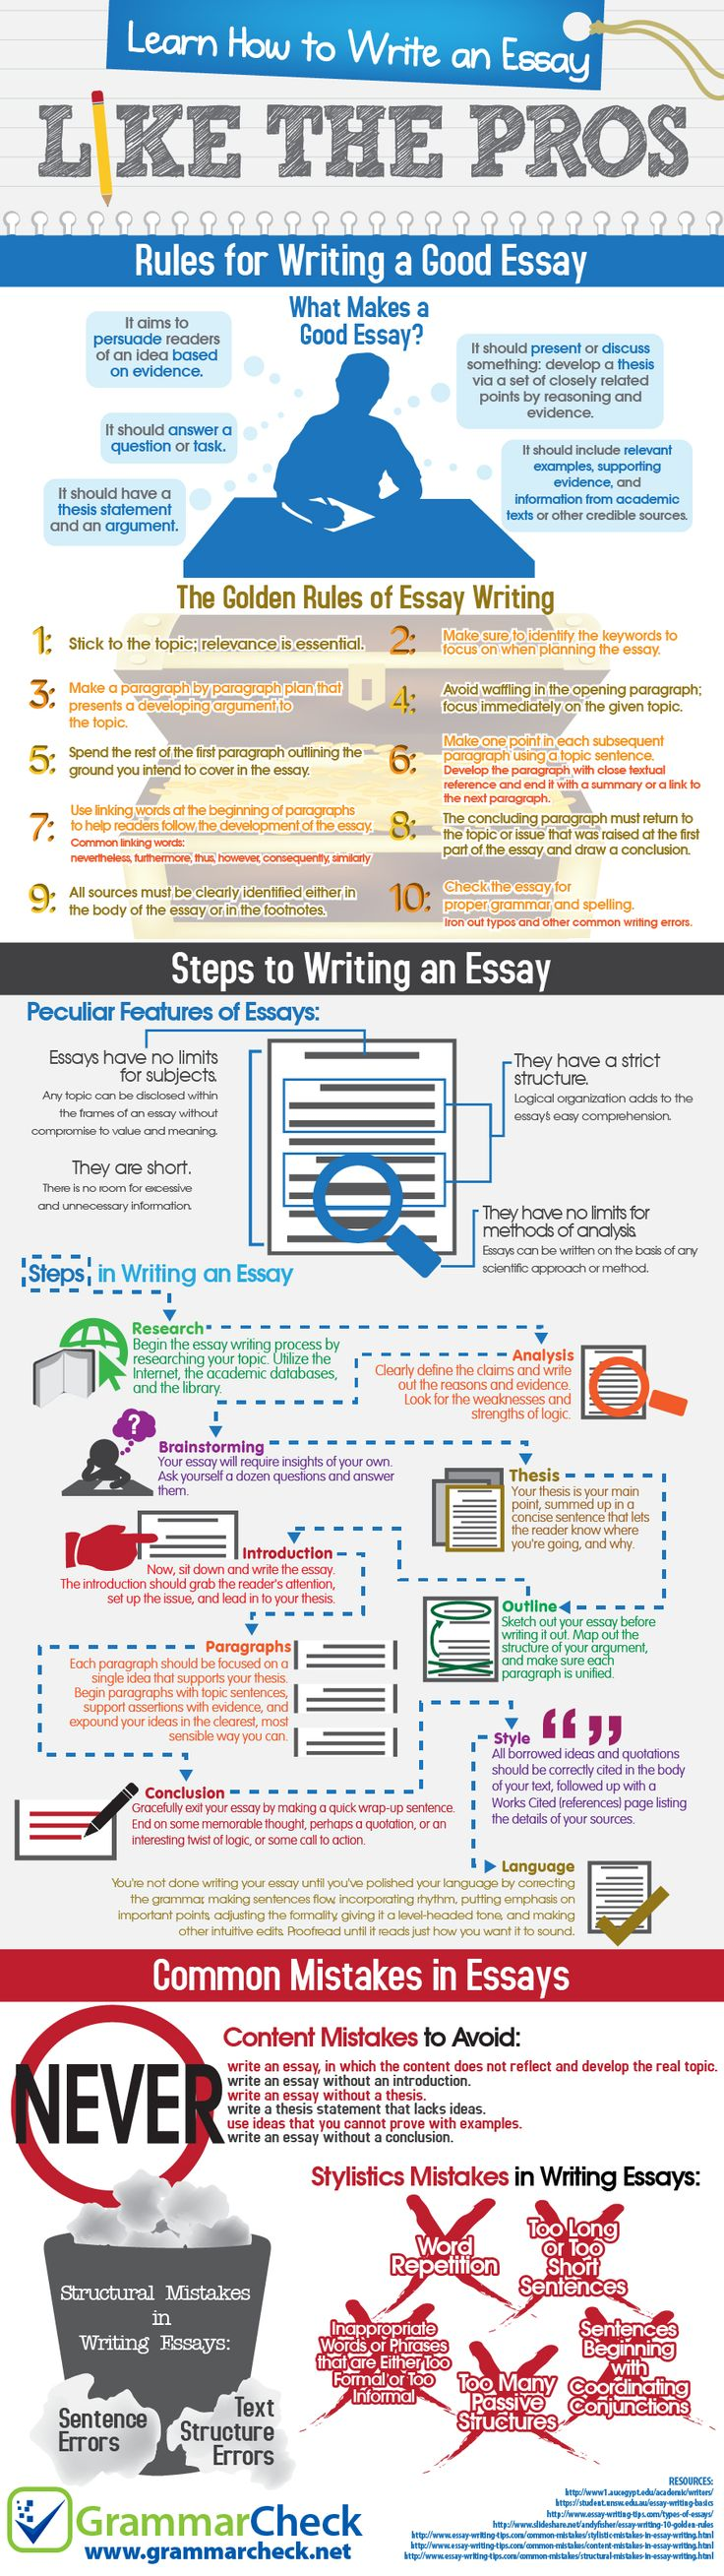 Does anyone know what a essay plan is?